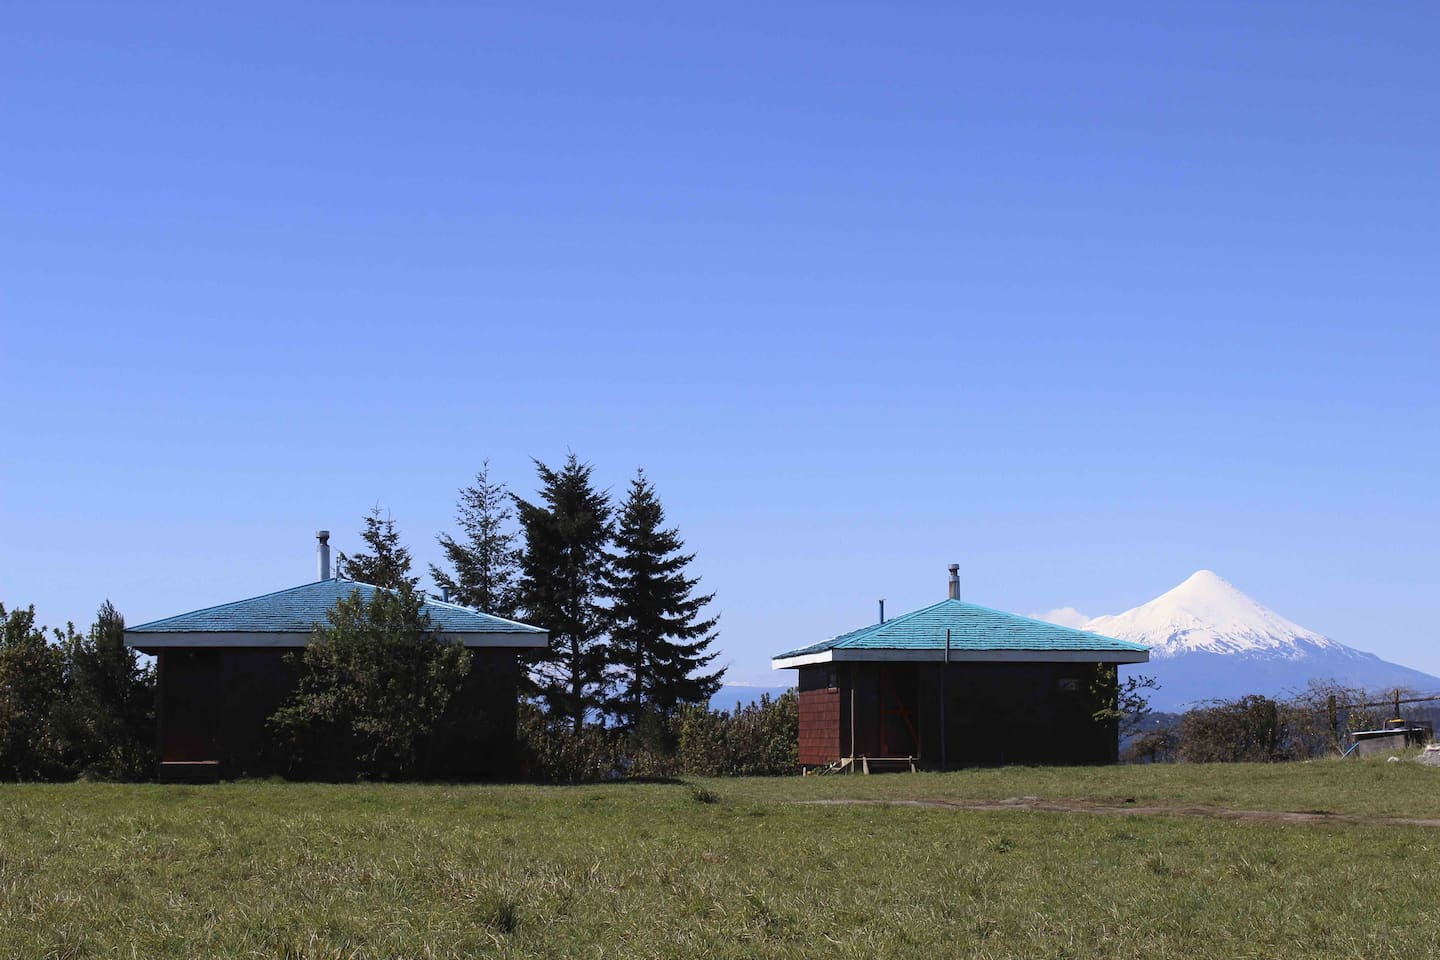 Cabins with beach access on Llanquihue Lake, overlooking Volcano Osorno.